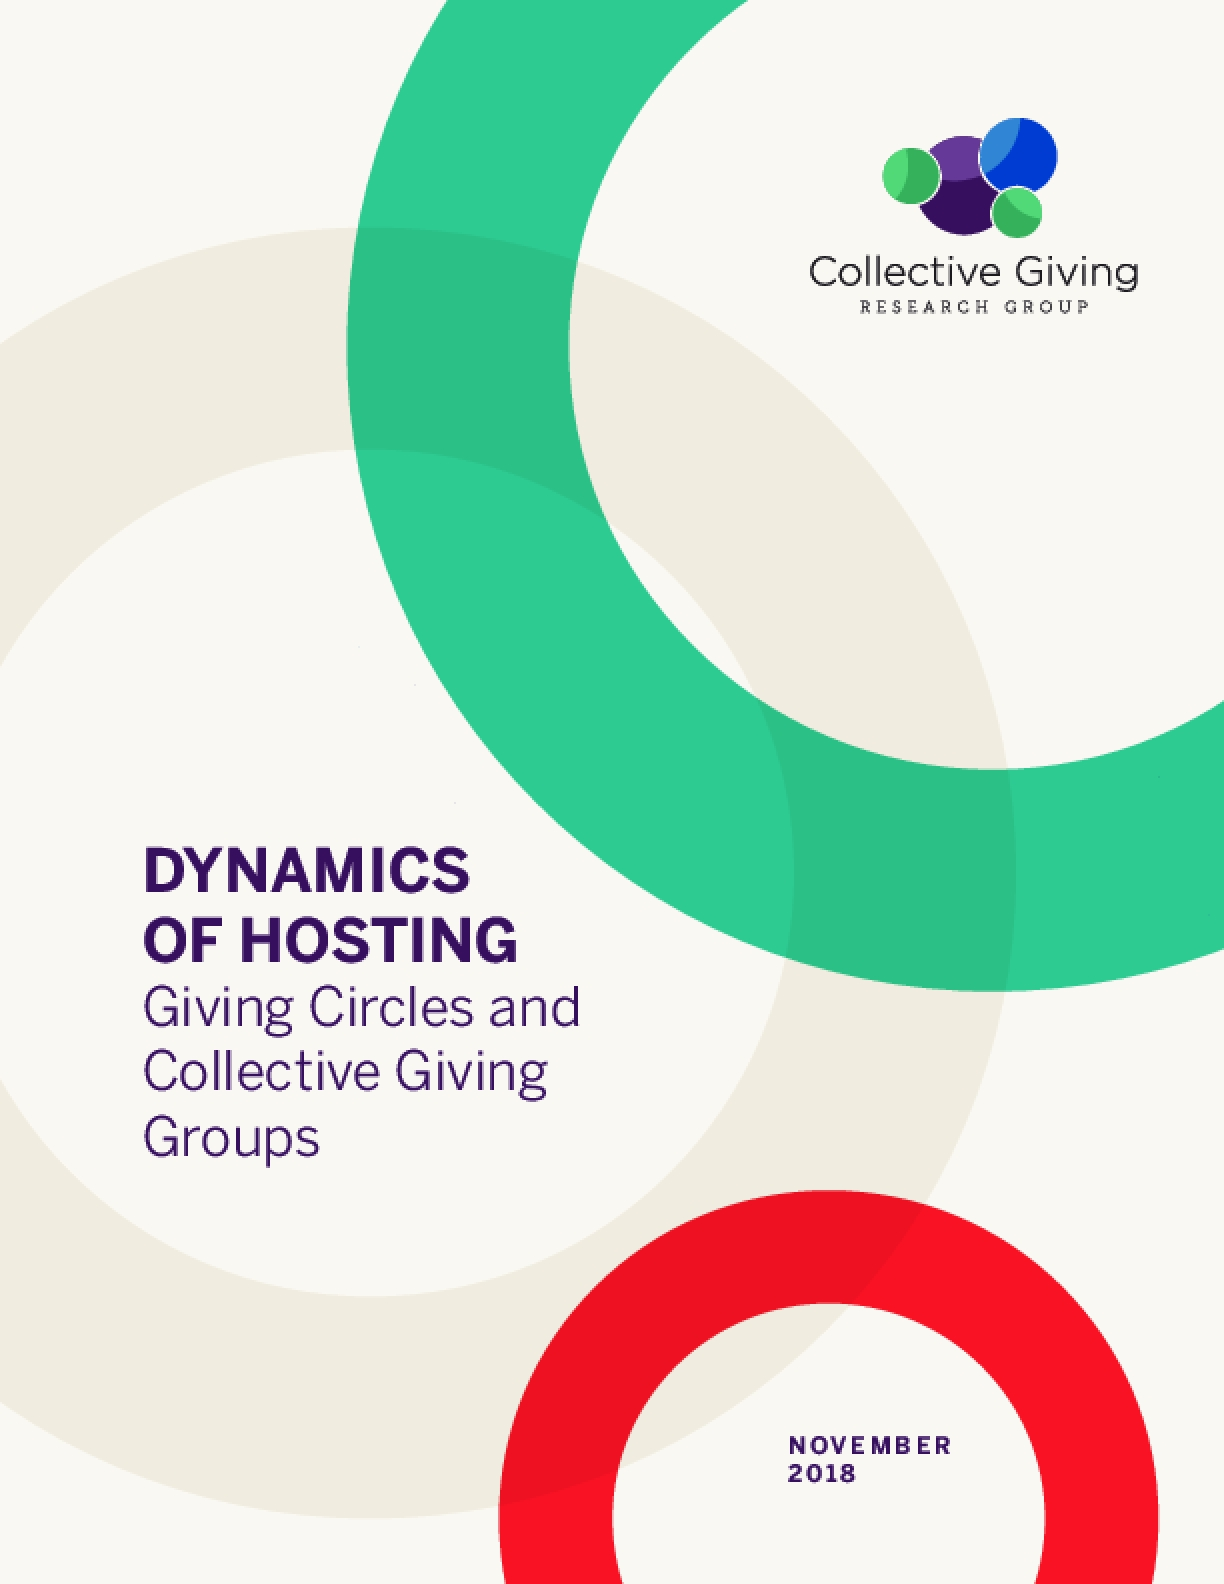 Dynamics of Hosting Giving Circles and Collective Giving Groups